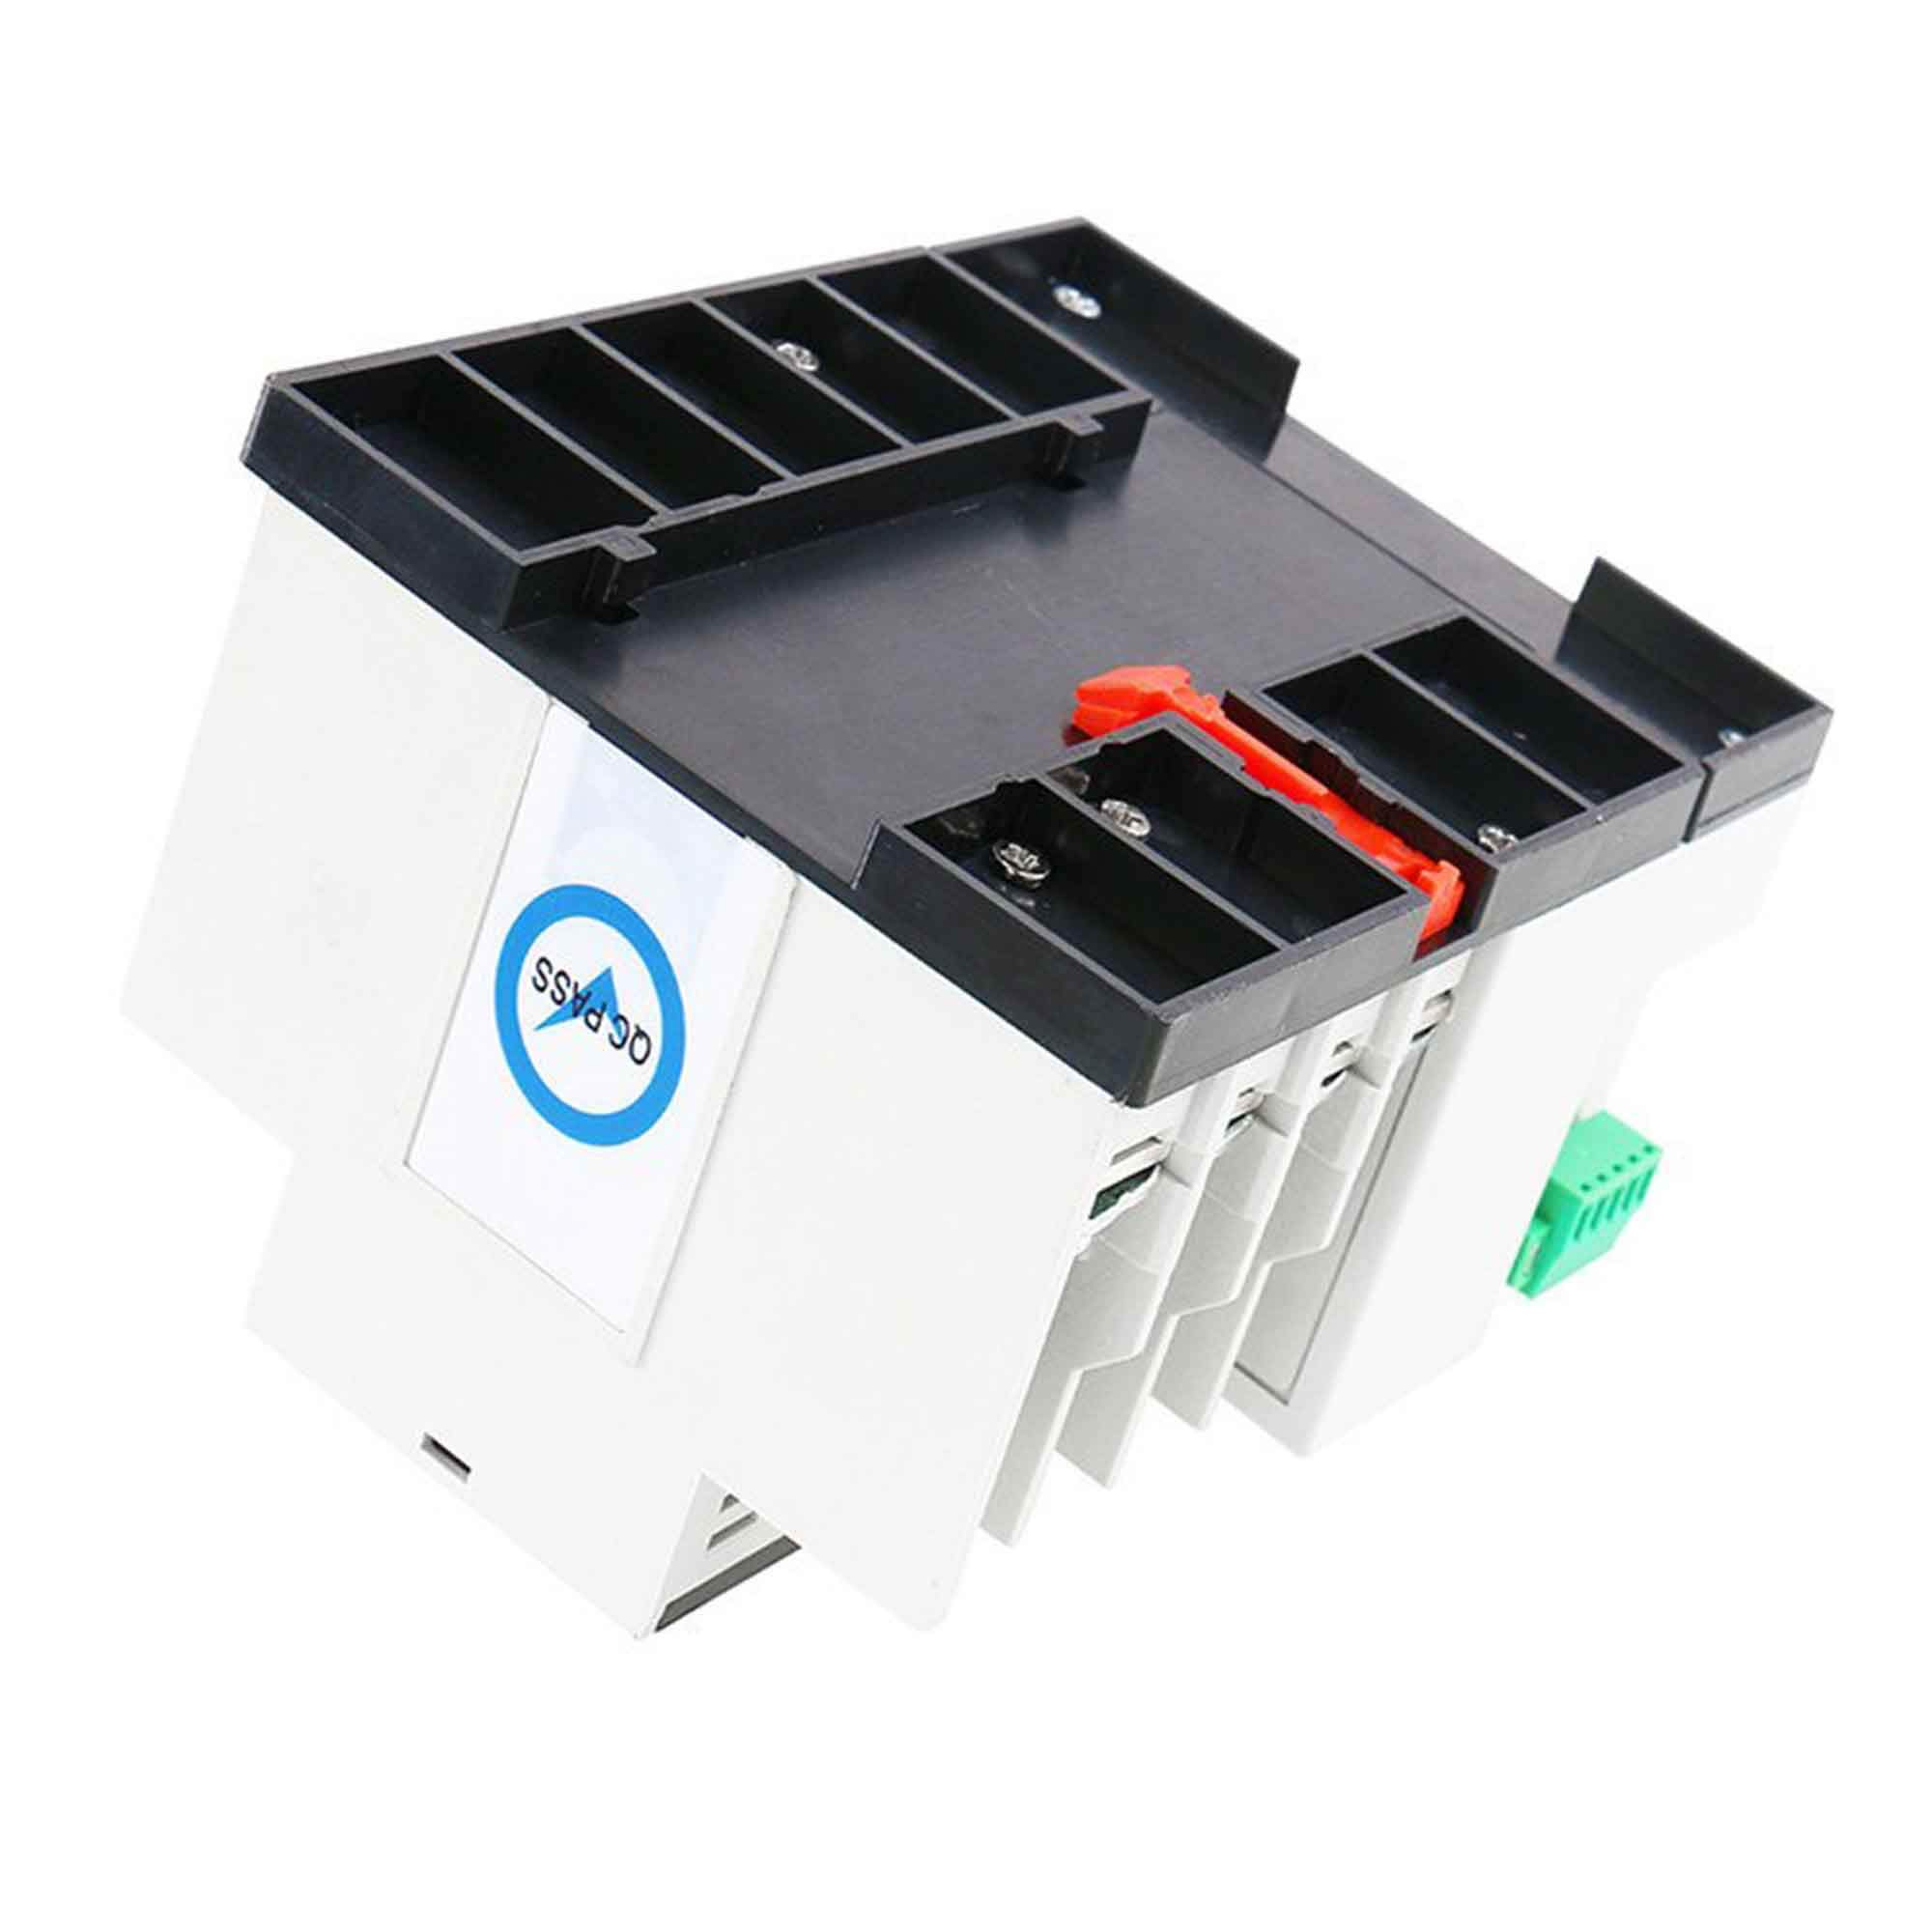 GAEYAELE W2R Mini ATS 4P Automatic Transfer Switch Controller Electrical Type ATS Max 100A 4POLE (W2R-4P 100A) by GAEYAELE (Image #5)